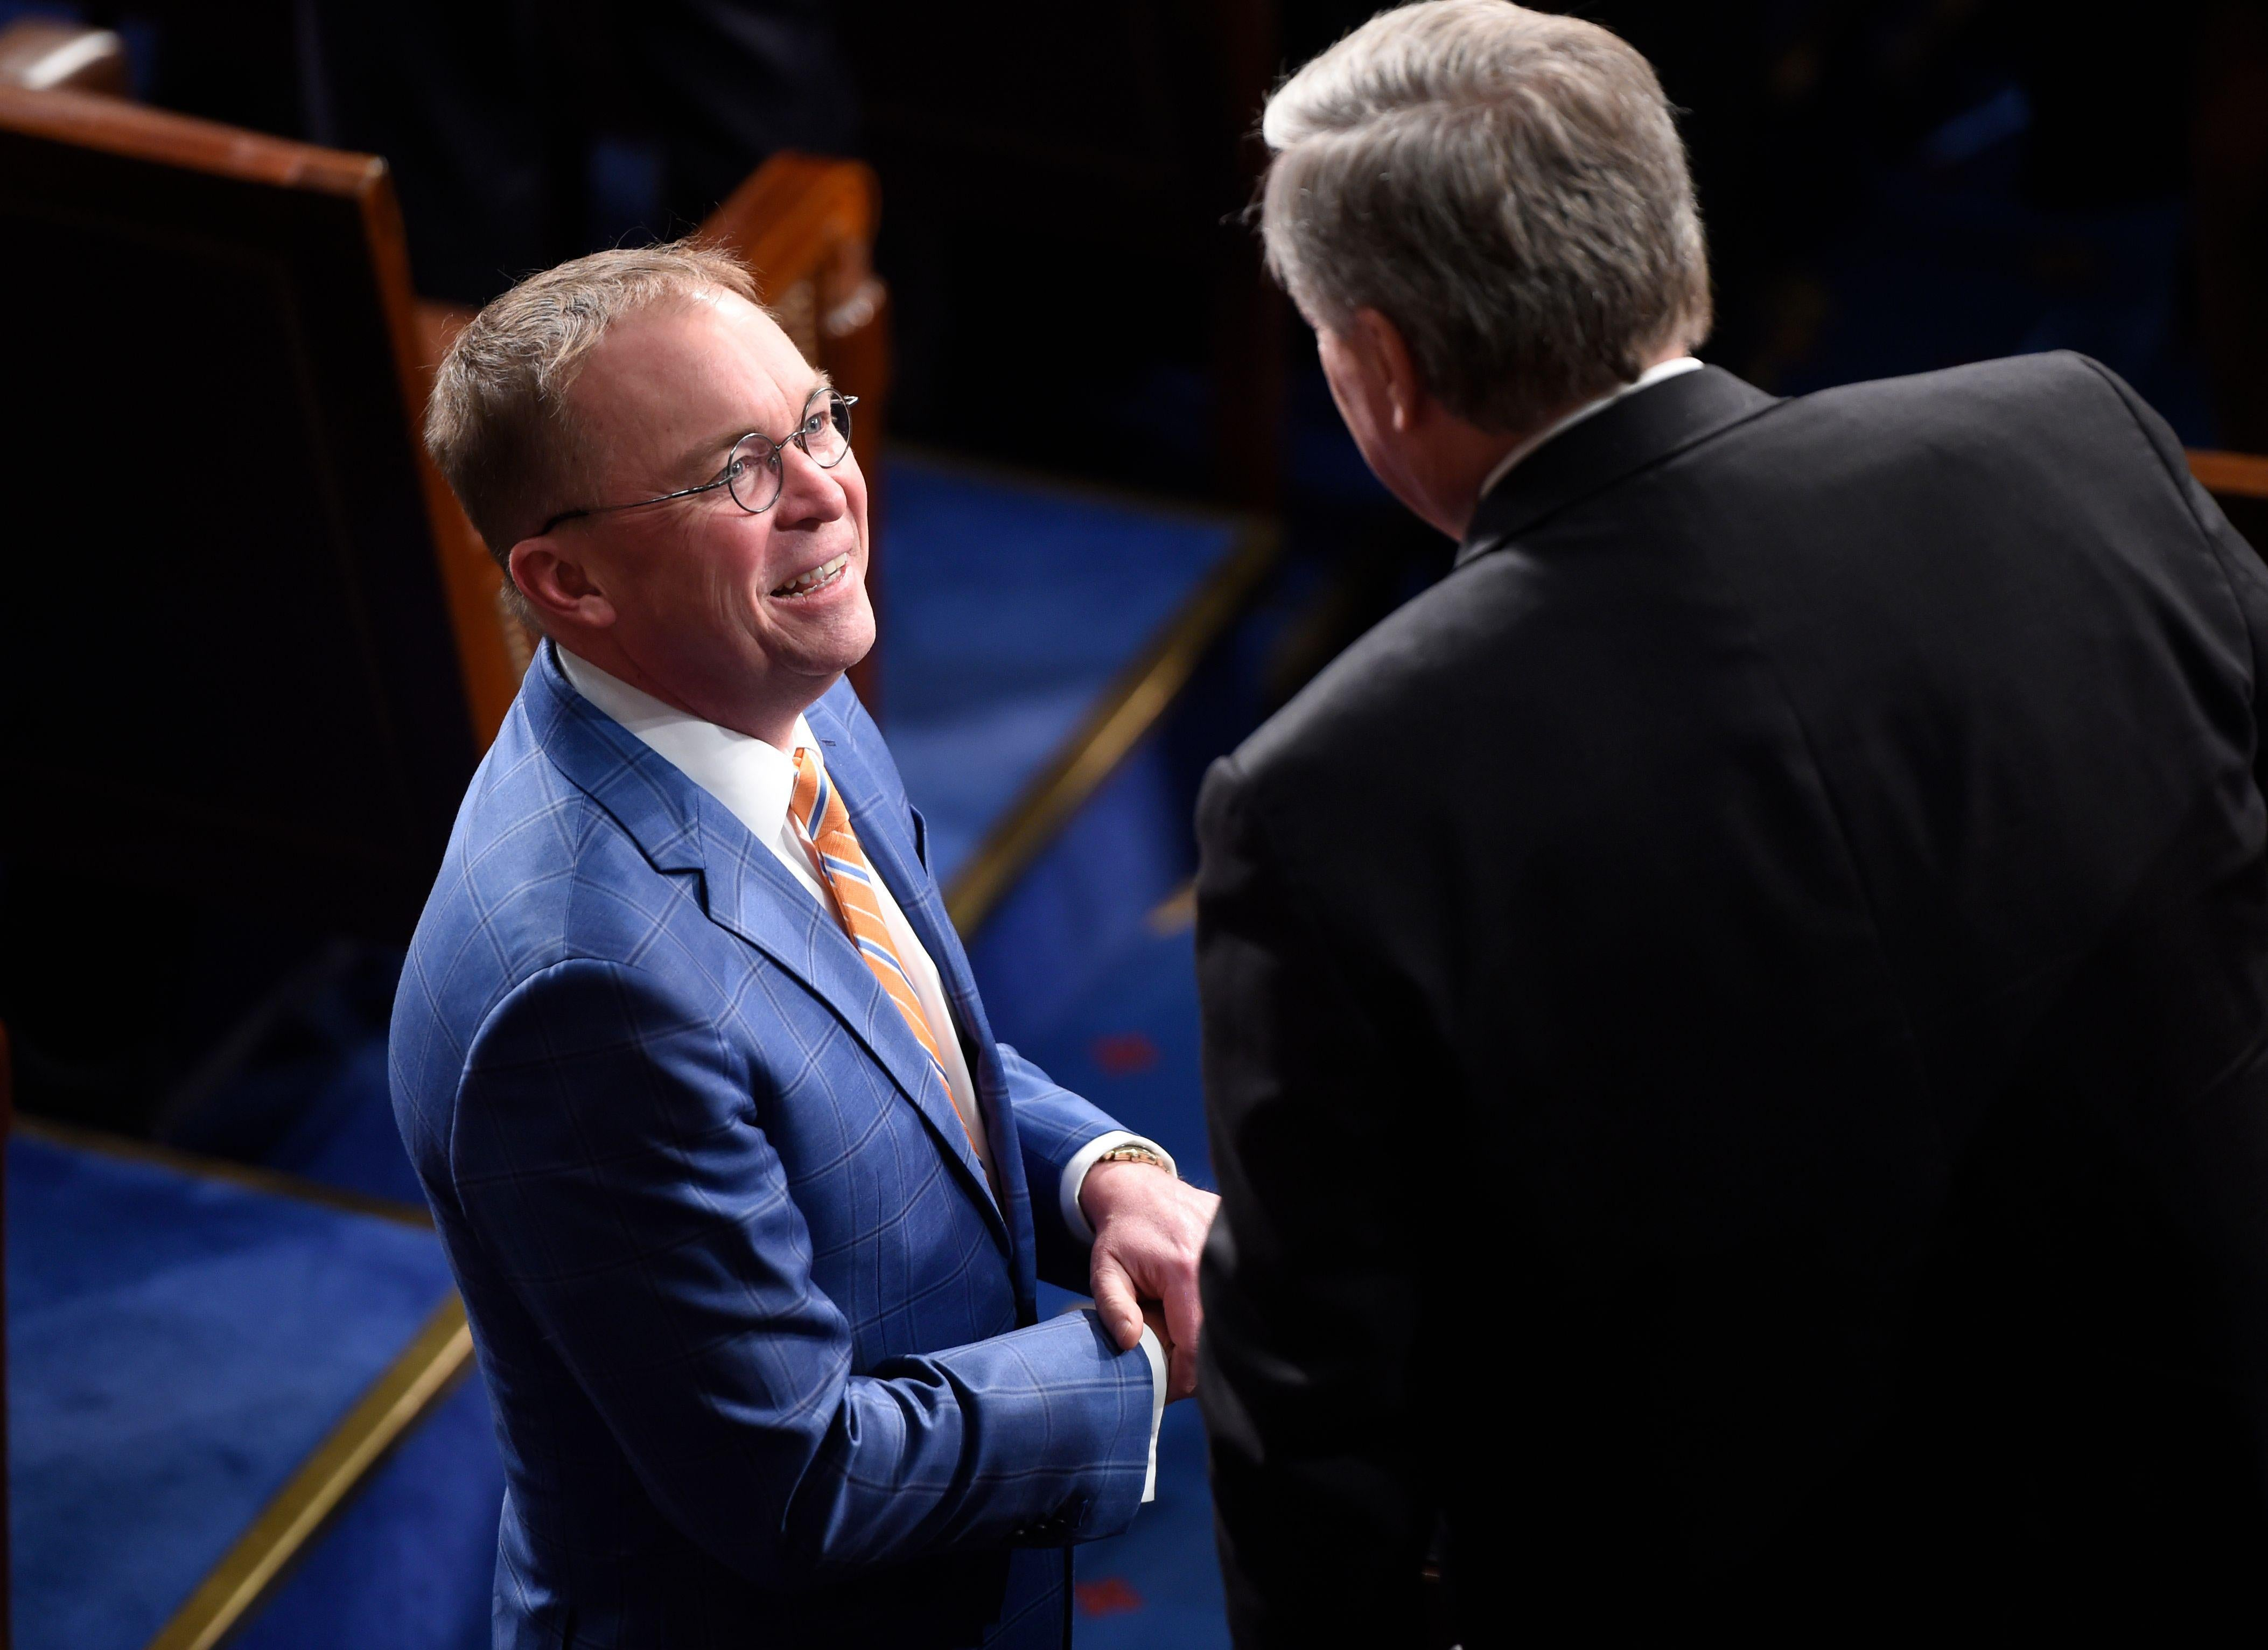 Mulvaney smiling in the House chamber.